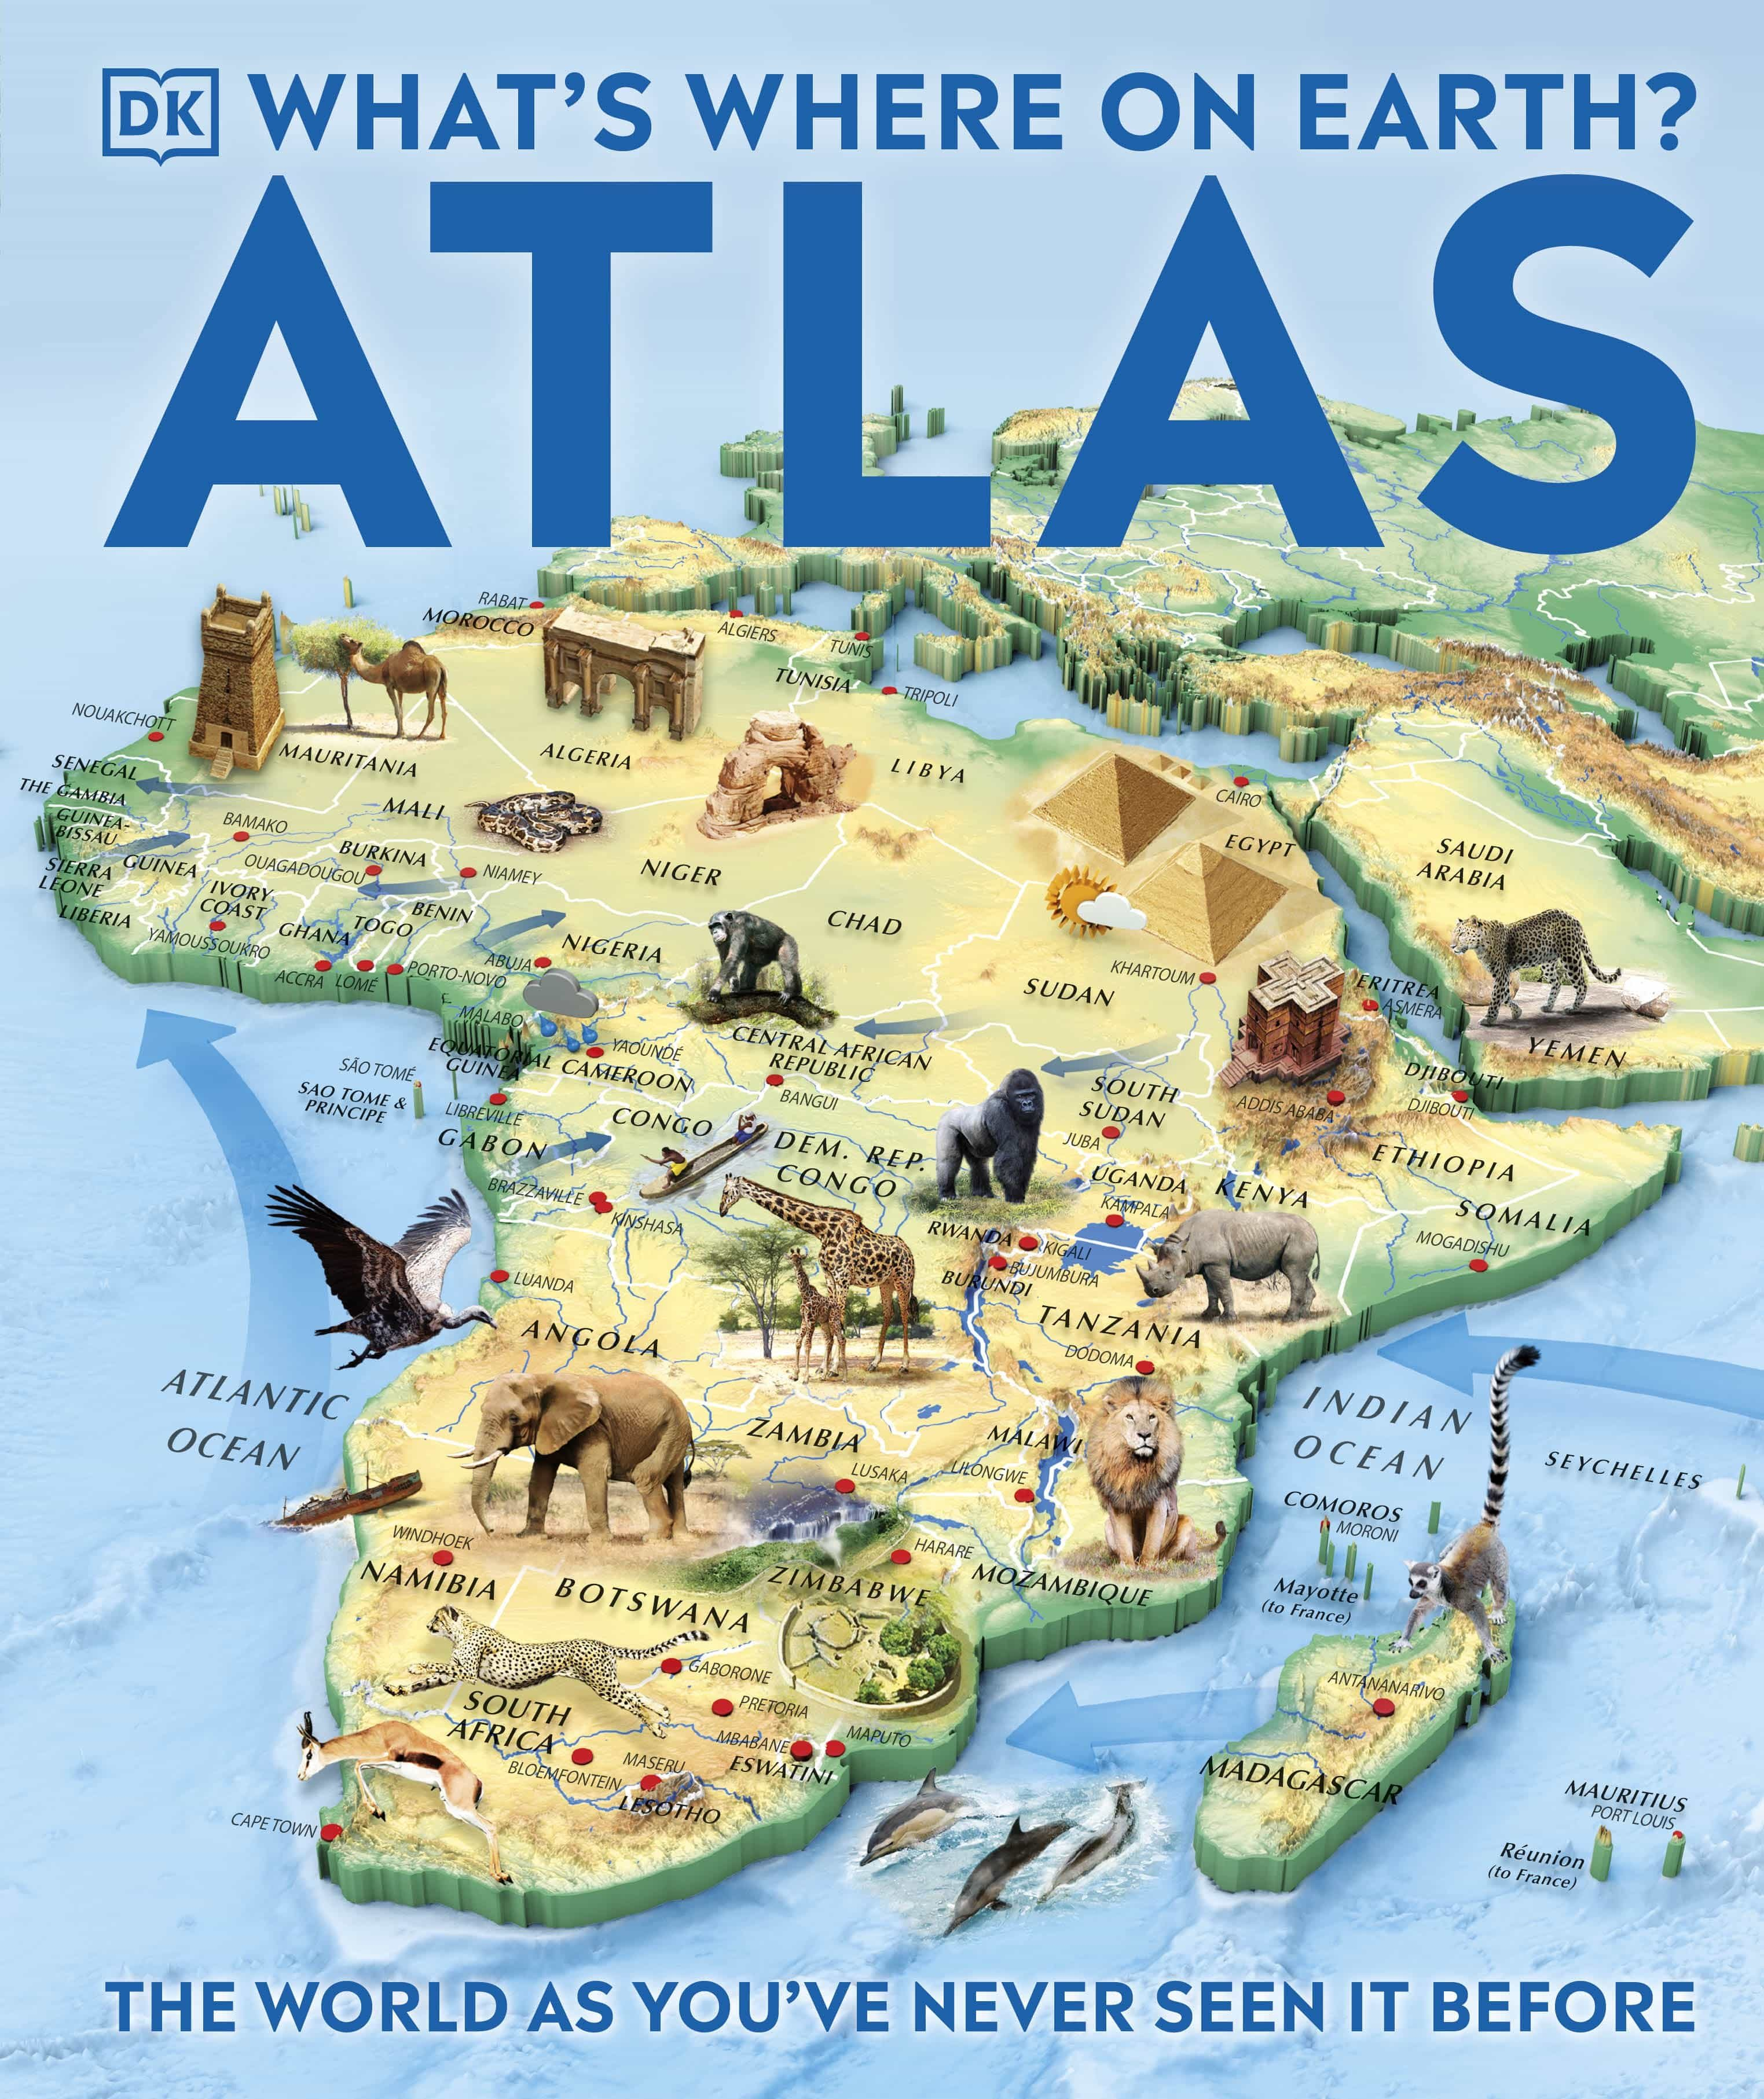 Whats where on earth atlas ebook descargar libro pdf o epub whats where on earth atlas ebook 9780241308691 gumiabroncs